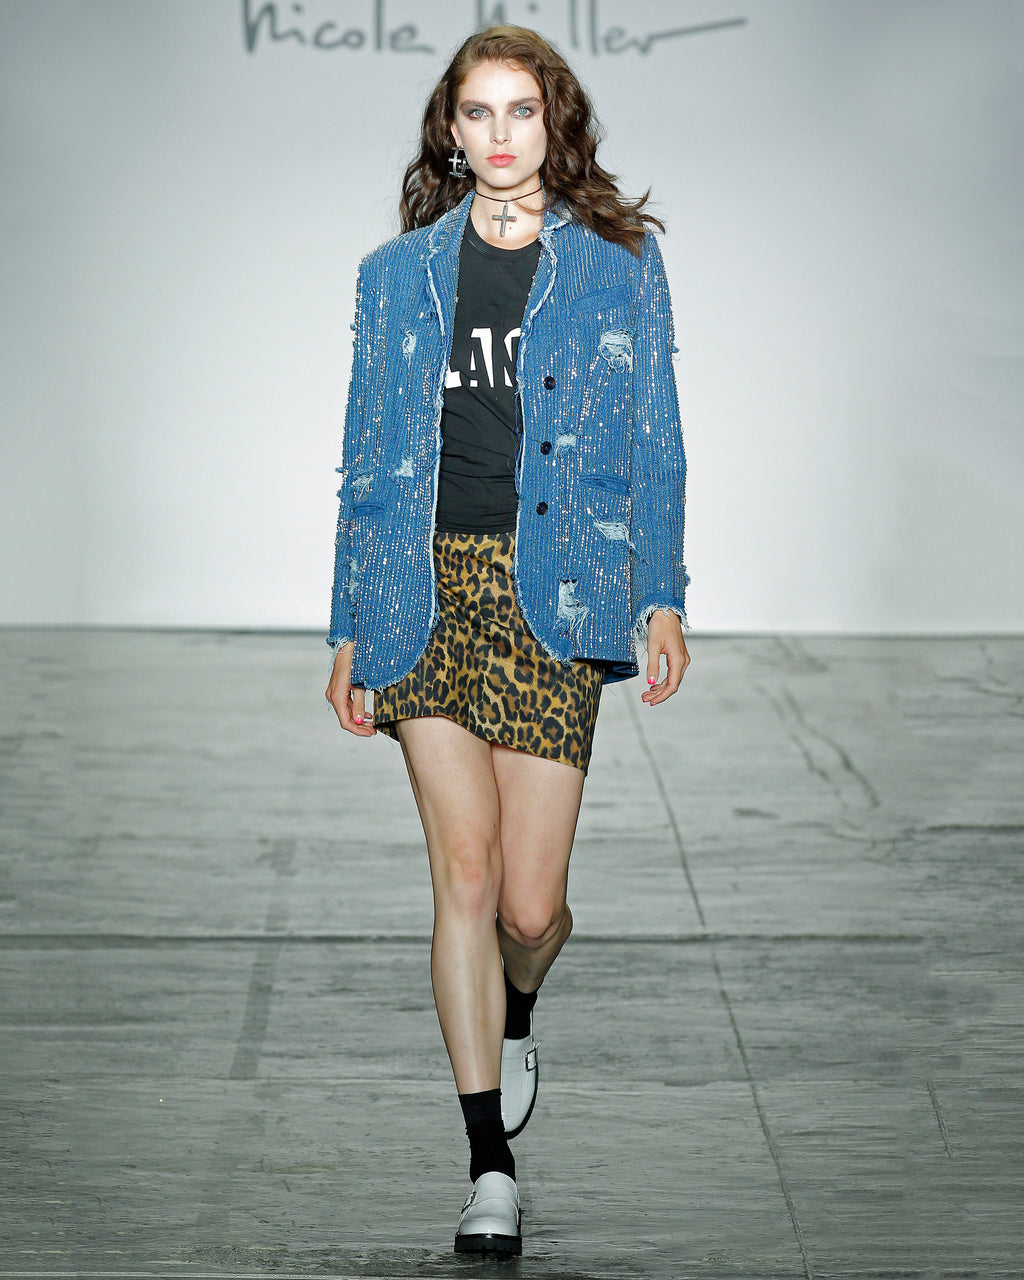 GH10012 - SHREDDED DENIM BOYFRIEND JACKET - outerwear - jackets - Straight off the runway, this shredded denim boyfriend jacket is the coolest denim jacket of the season. It features hand stitched crystal clear embellishments. Wear with a t-shirt and skinny jeans or over a little black dress.